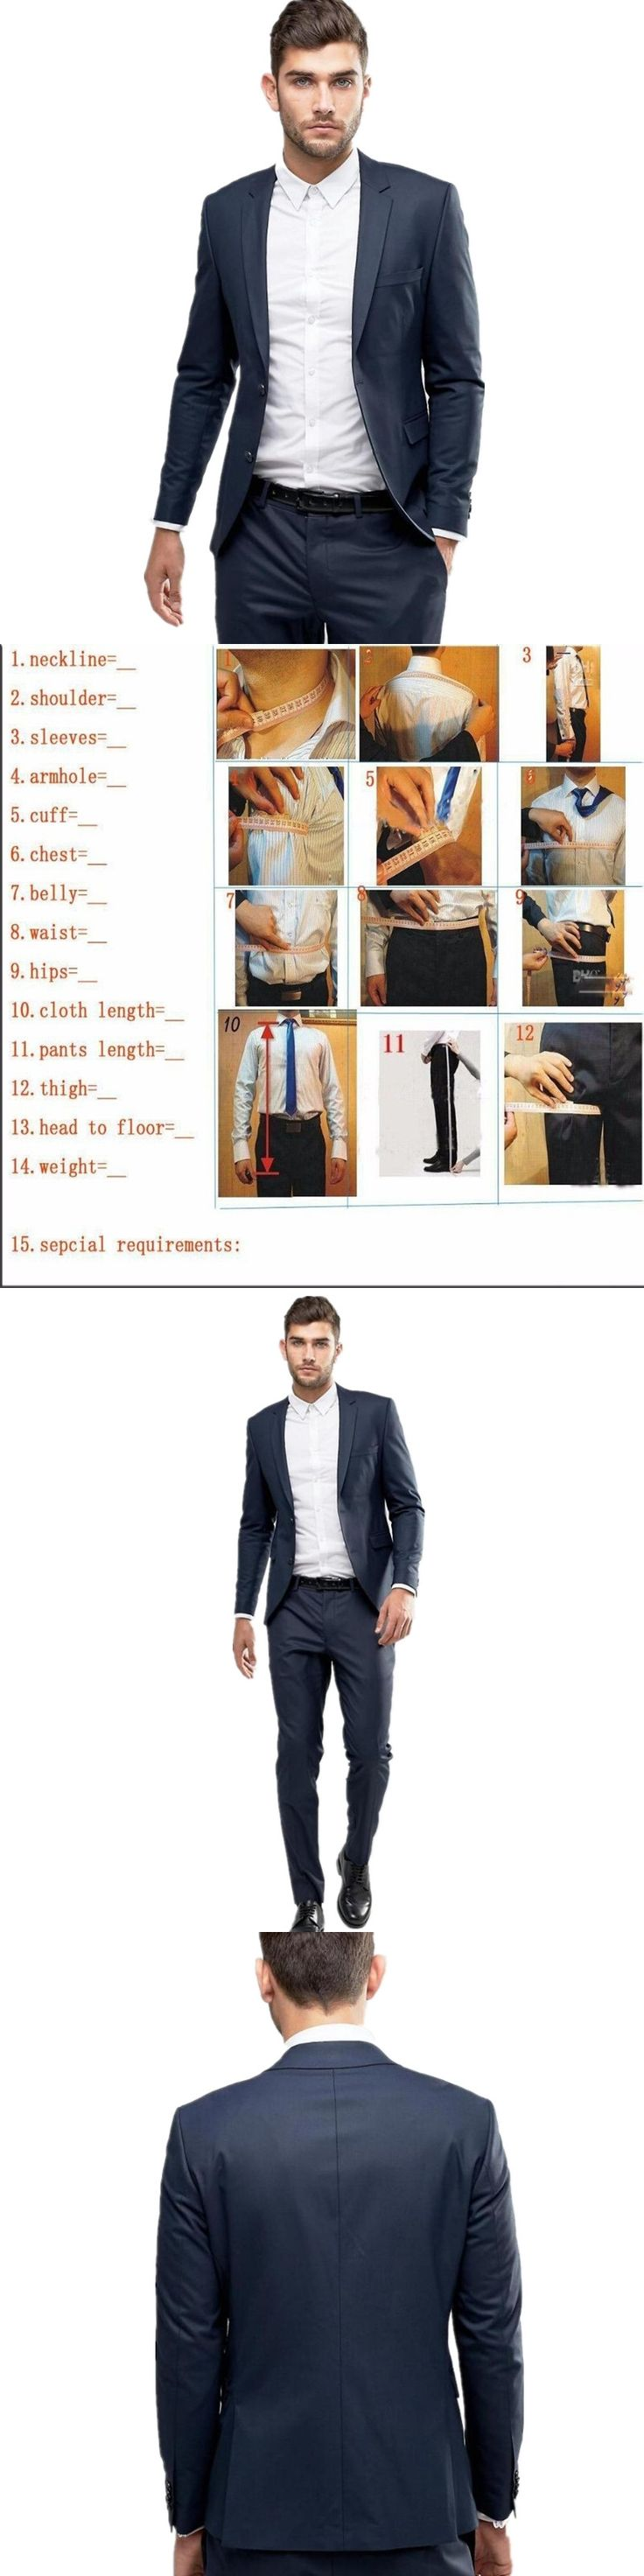 Handmade Men Suits Groom Tuxedos 2 Pieses Cheap Tuxedo Wedding Suits Groom Groomsmen Tuxedos Mens wedding suits (Jacket+Pants)